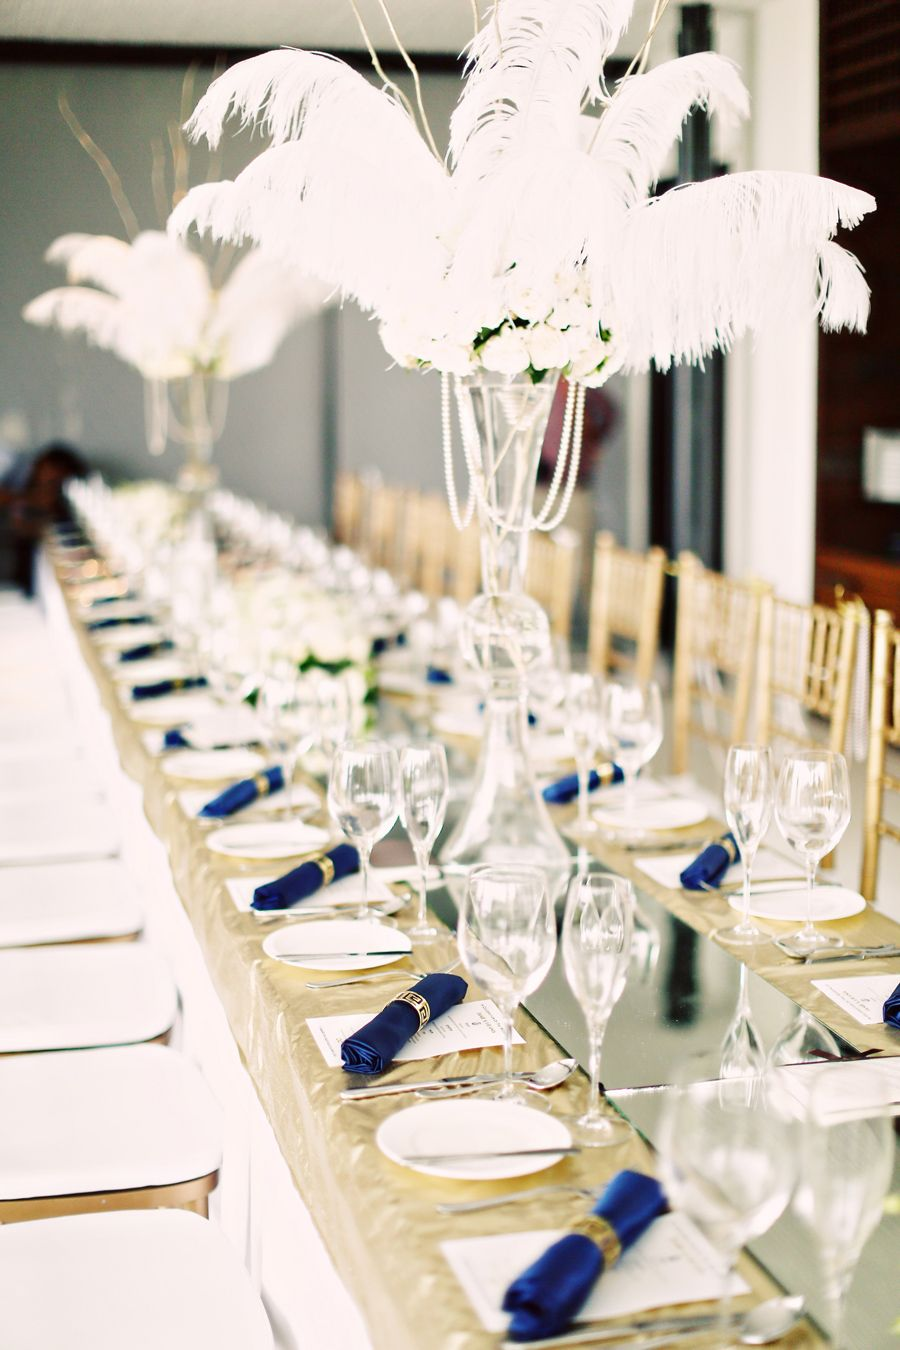 White ostrich feathers for a Gatsby / Art Deco themed wedding ...